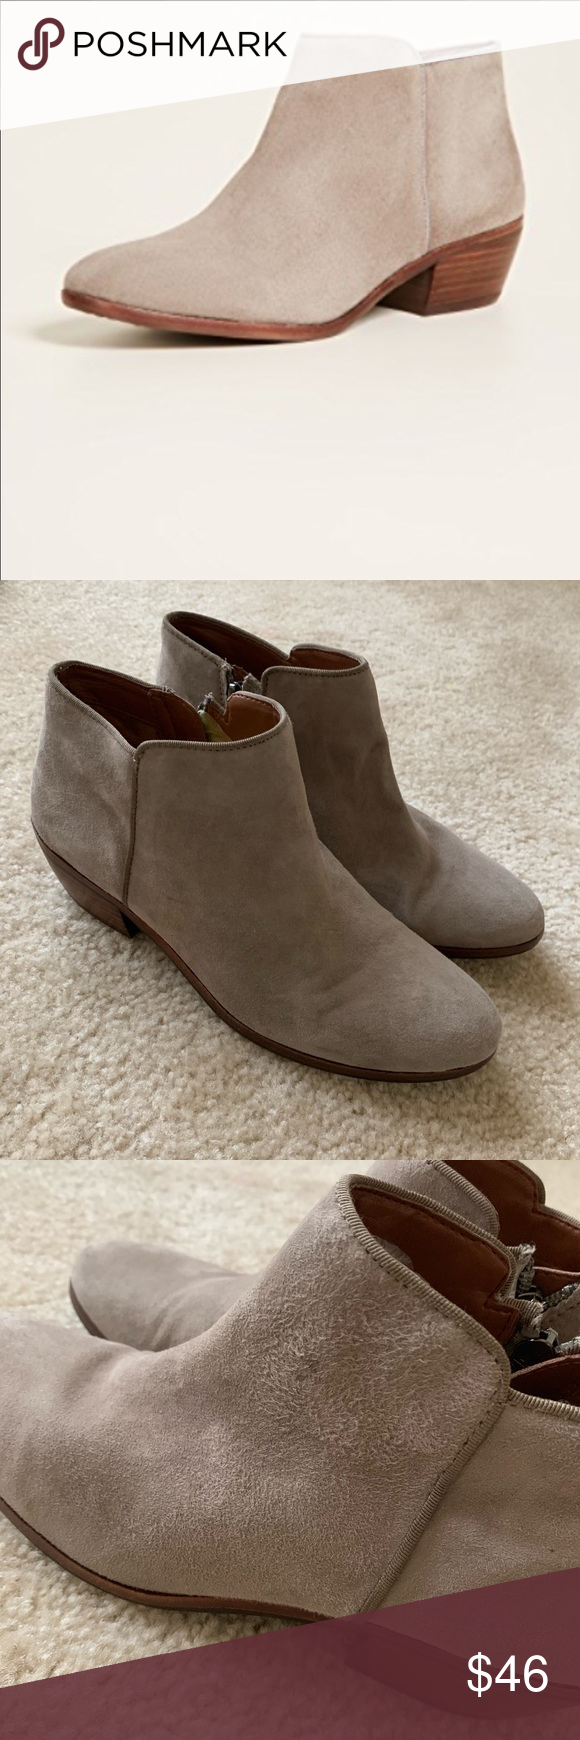 89d24701c29ee Sam Edelman Petty suede Boots Booties 7.5 Condition  Great used! Very minor  wear as